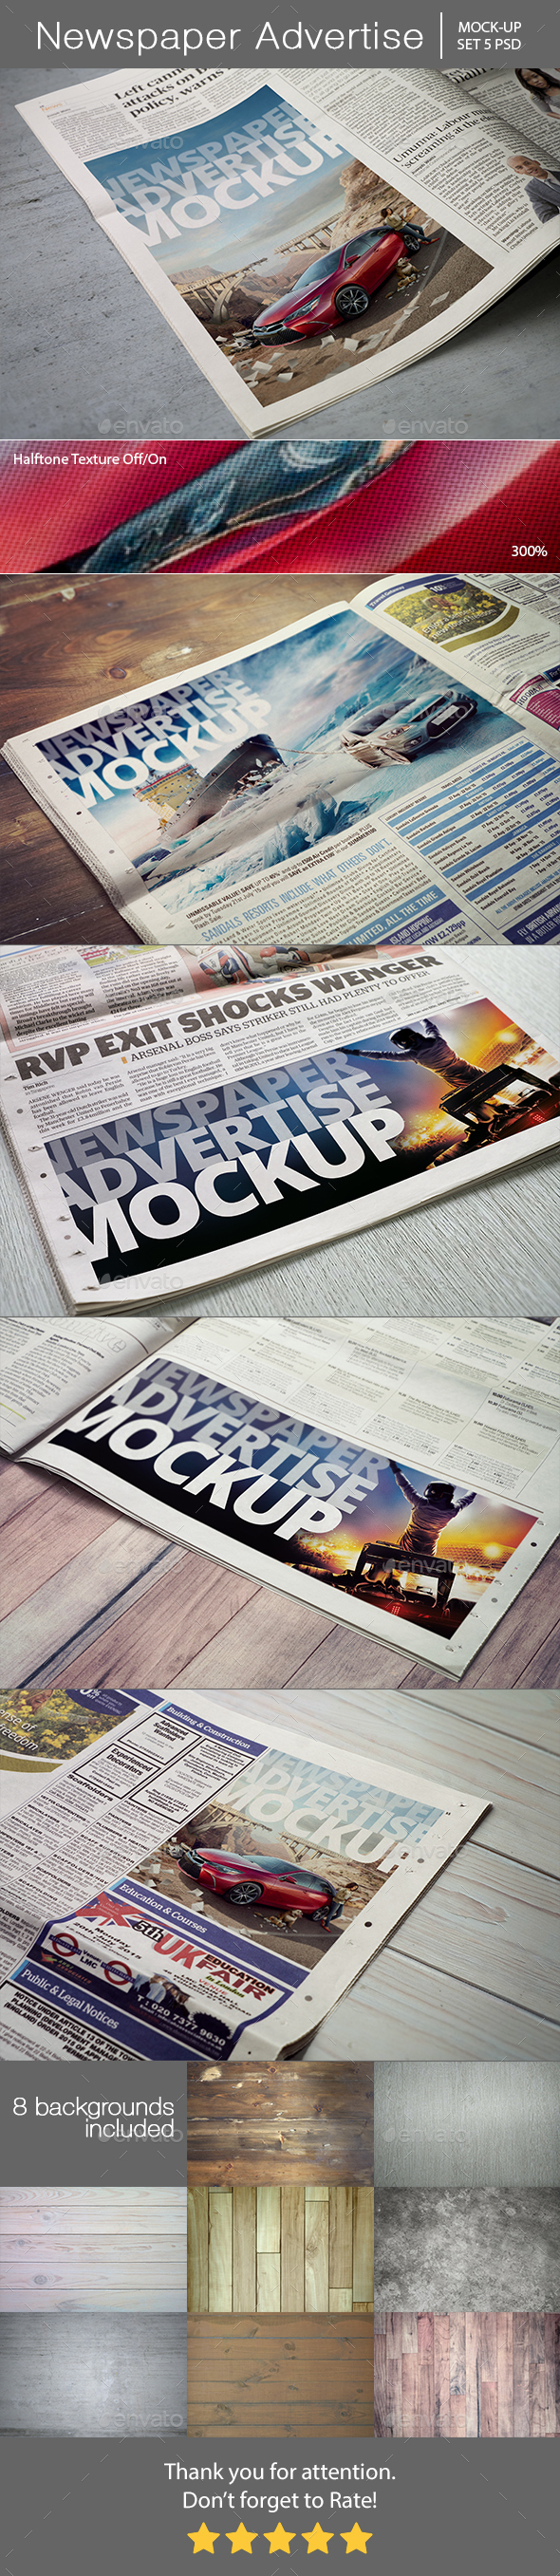 Newspaper Advertise Mockup - Miscellaneous Print